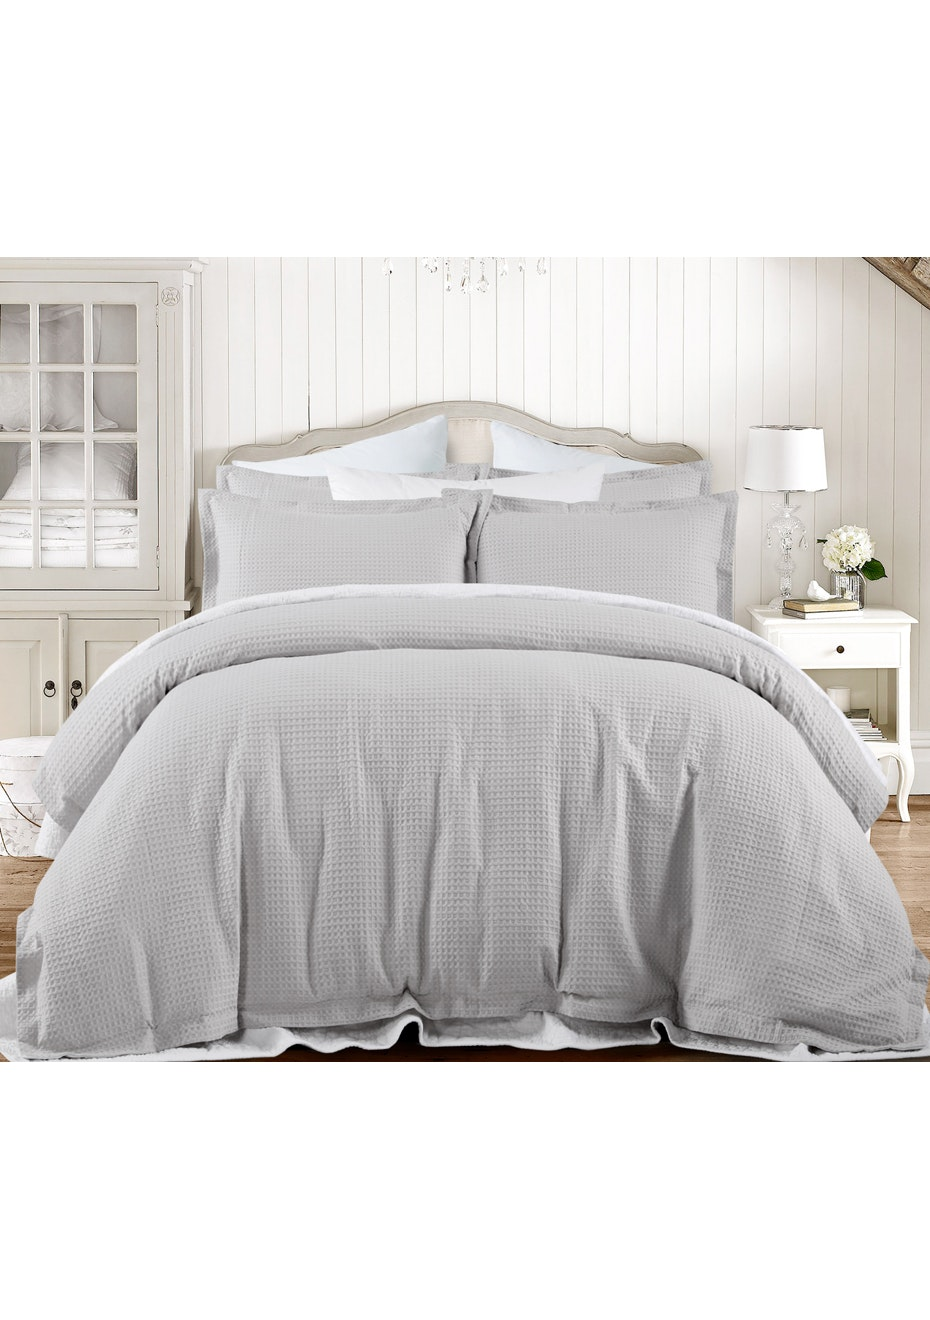 Grand Atelier Grey Hotel Waffle Quilt Cover Set- Queen Bed